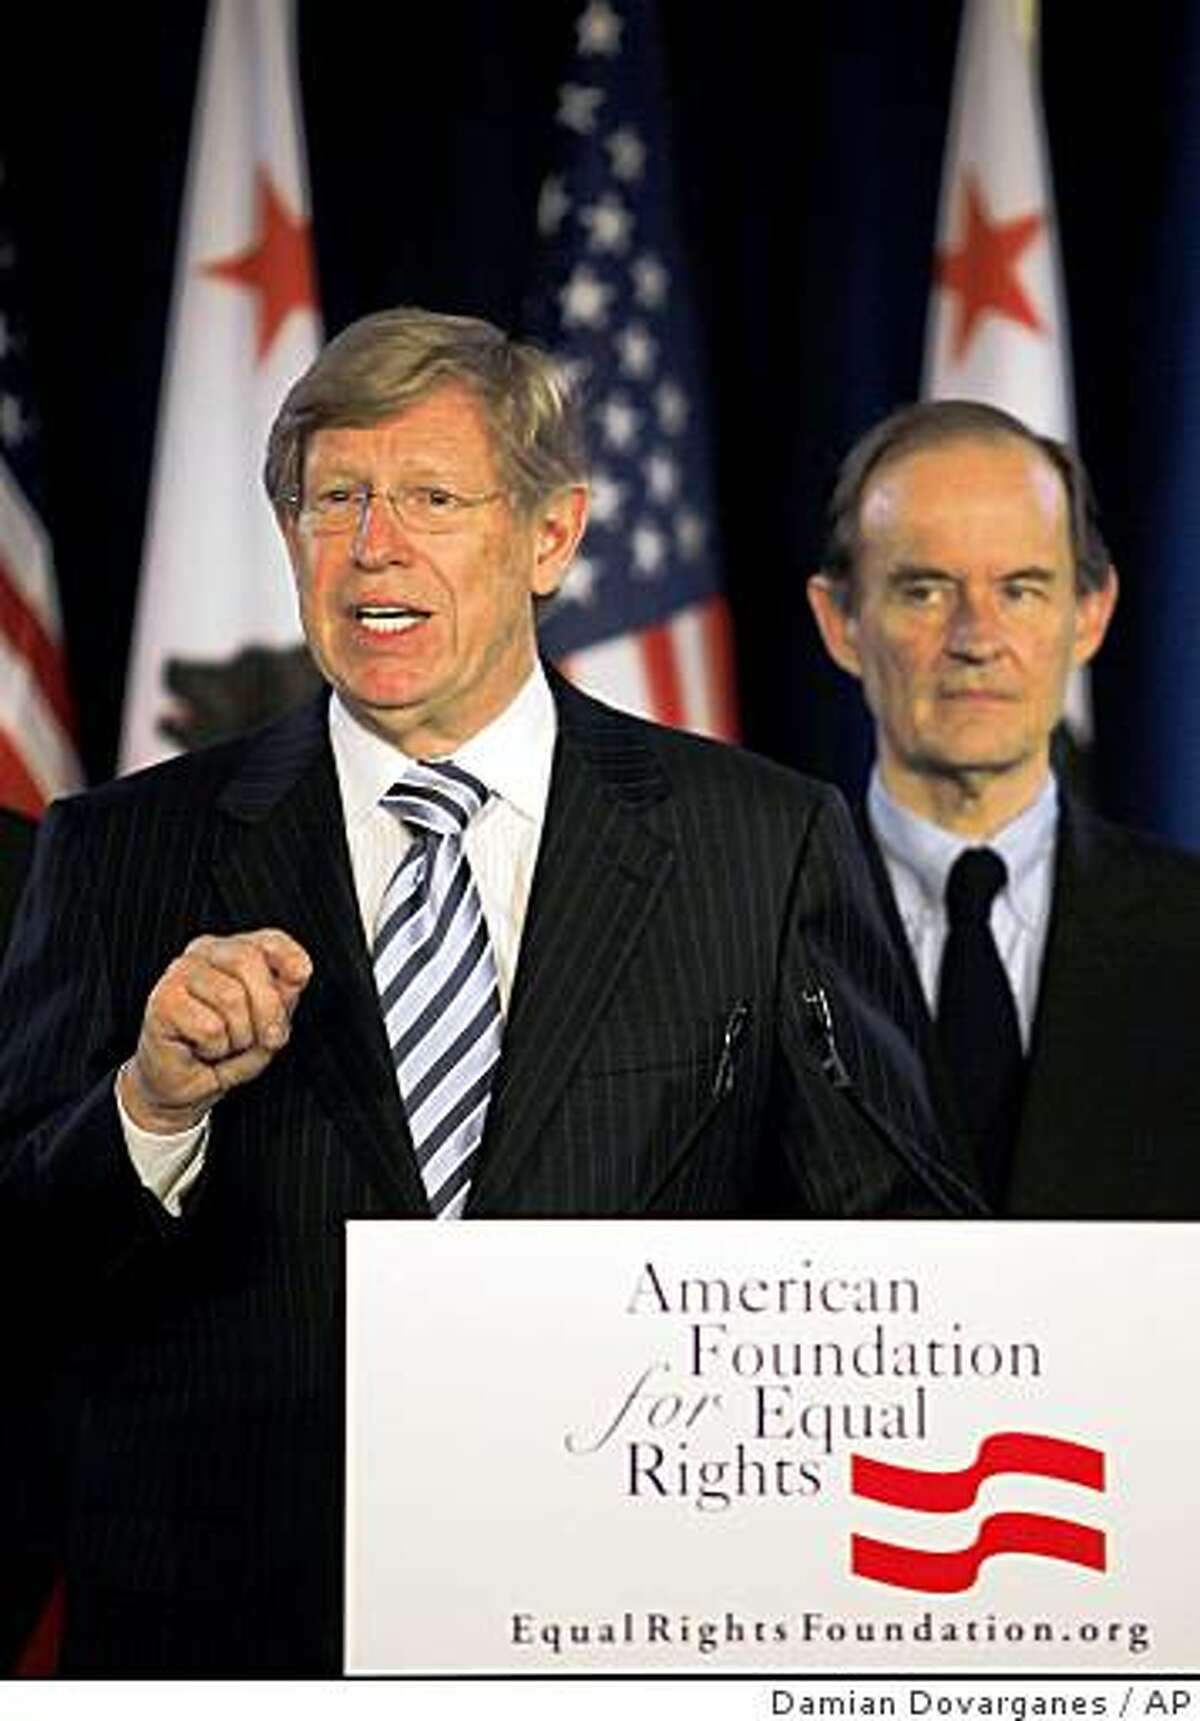 Attorneys Theodore B. Olson, left, and David Boies, announce a federal court challenge to Proposition 8 during a news conference in Los Angeles on Wednesday, May 27, 2009. The suit calls for an injunction against Proposition 8 until the case is resolved, which would immediately reinstate marriage rights for same sex couples. (AP Photo/Damian Dovarganes)